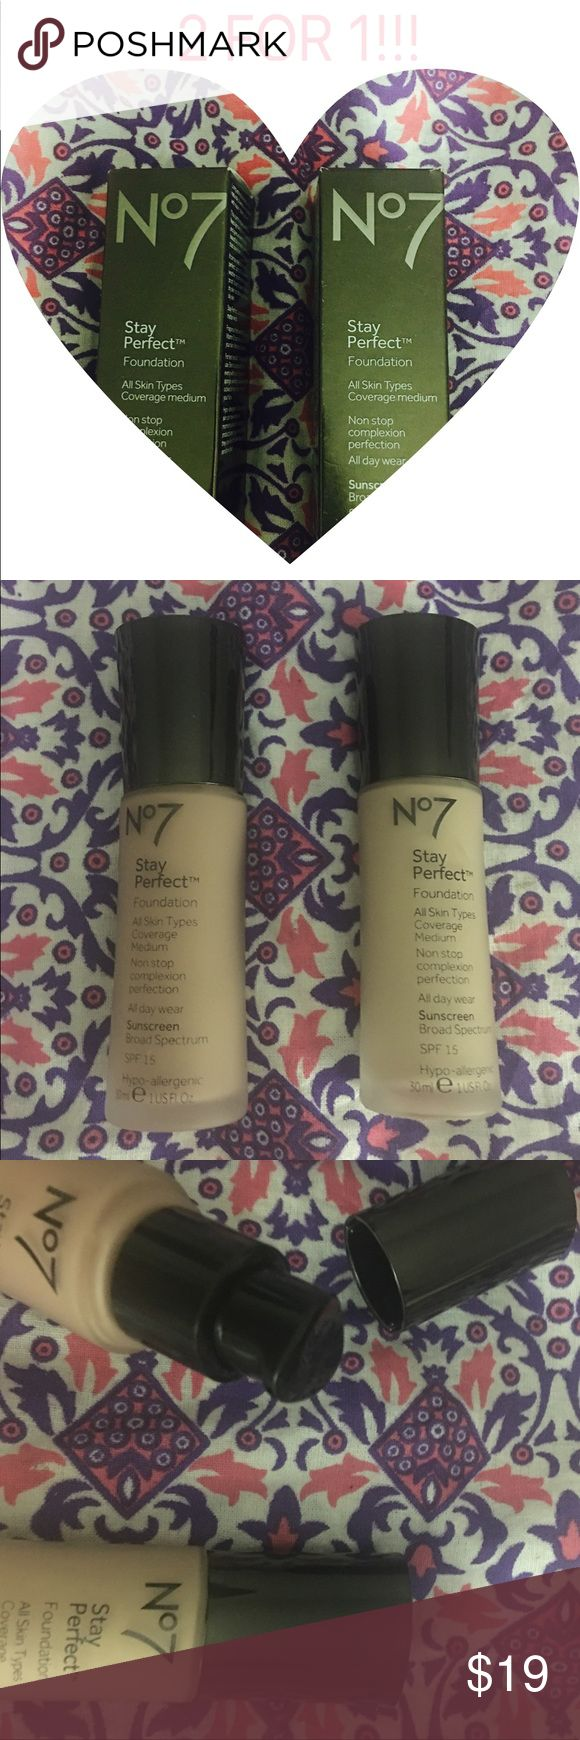 No. 7 Stay Perfect Foundation No. 7 Stay Perfect Foundation in WHEAT & WARM IVORY. 2 bottles for the price of 1. Brand new, never used. Makeup Face Primer